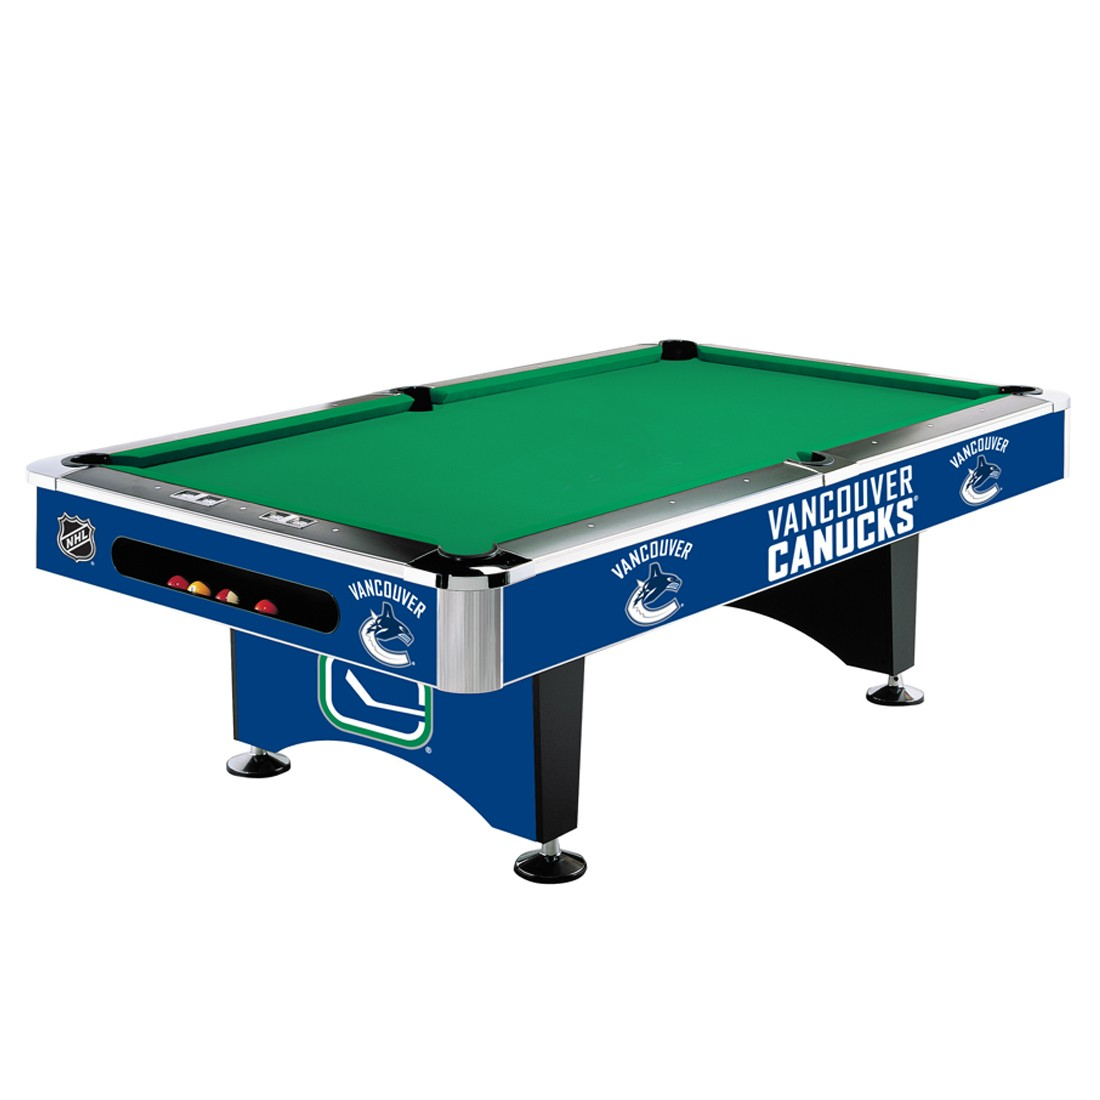 VANCOUVER CANUCKS® 8-FT. POOL TABLE